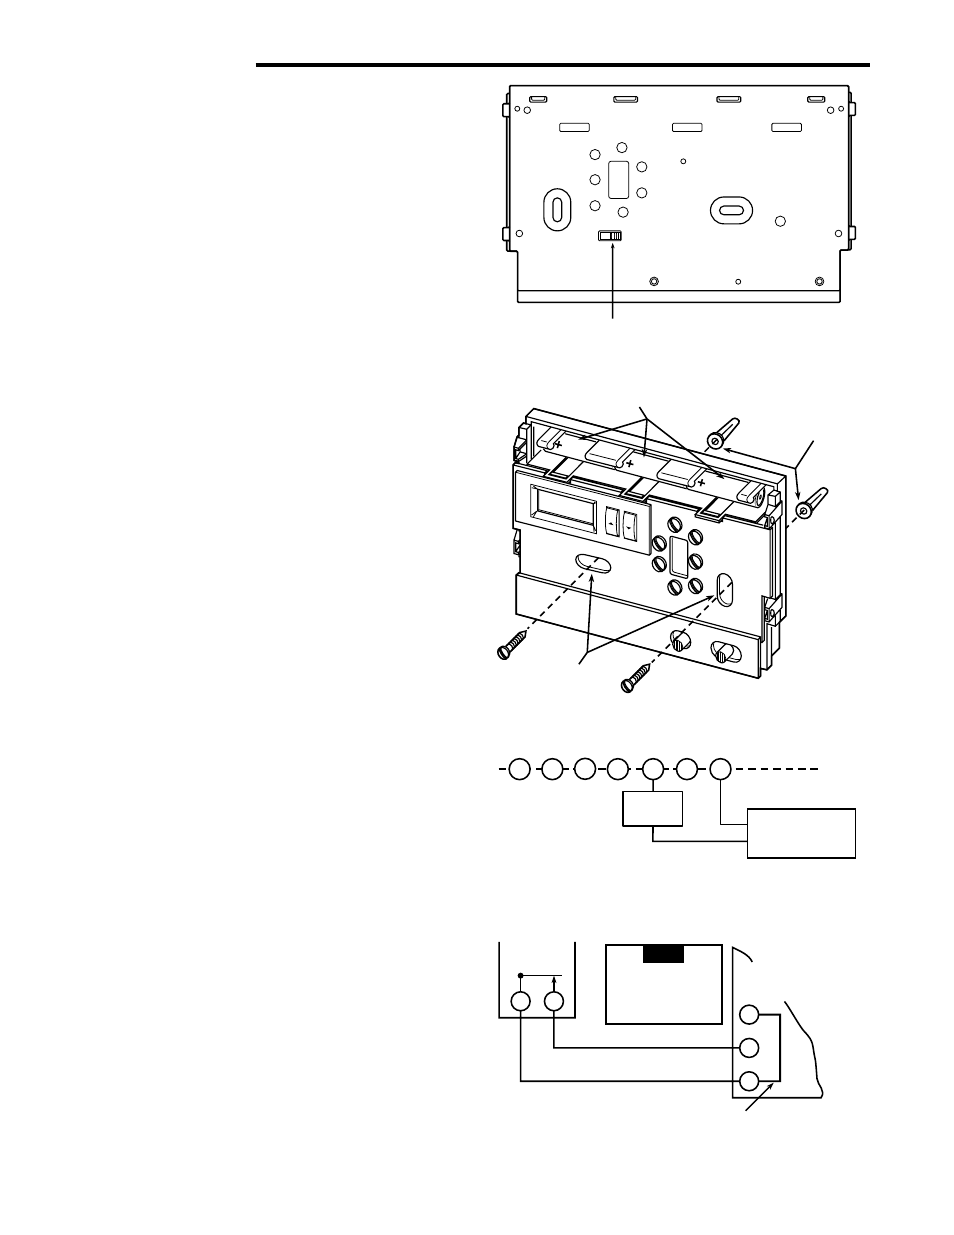 hight resolution of installation remove old thermostat attach thermostat base to wall white rodgers 1f86 444 user manual page 2 4